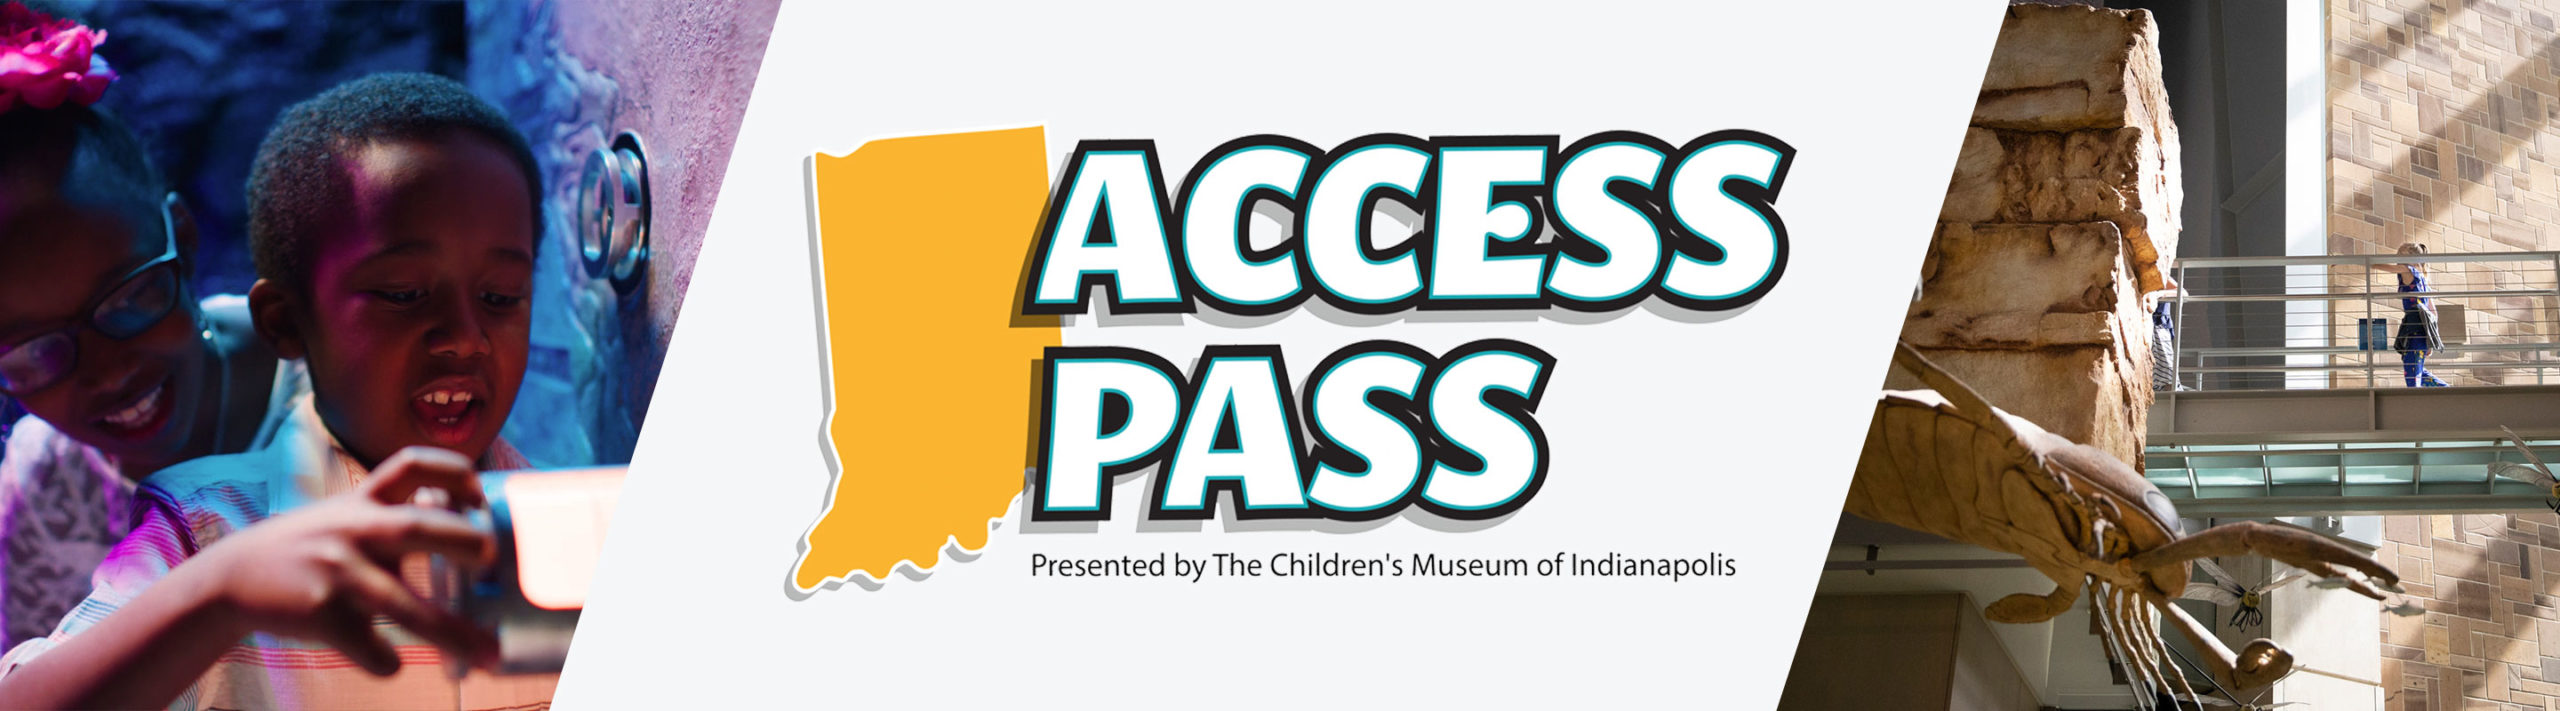 Access Pass Header